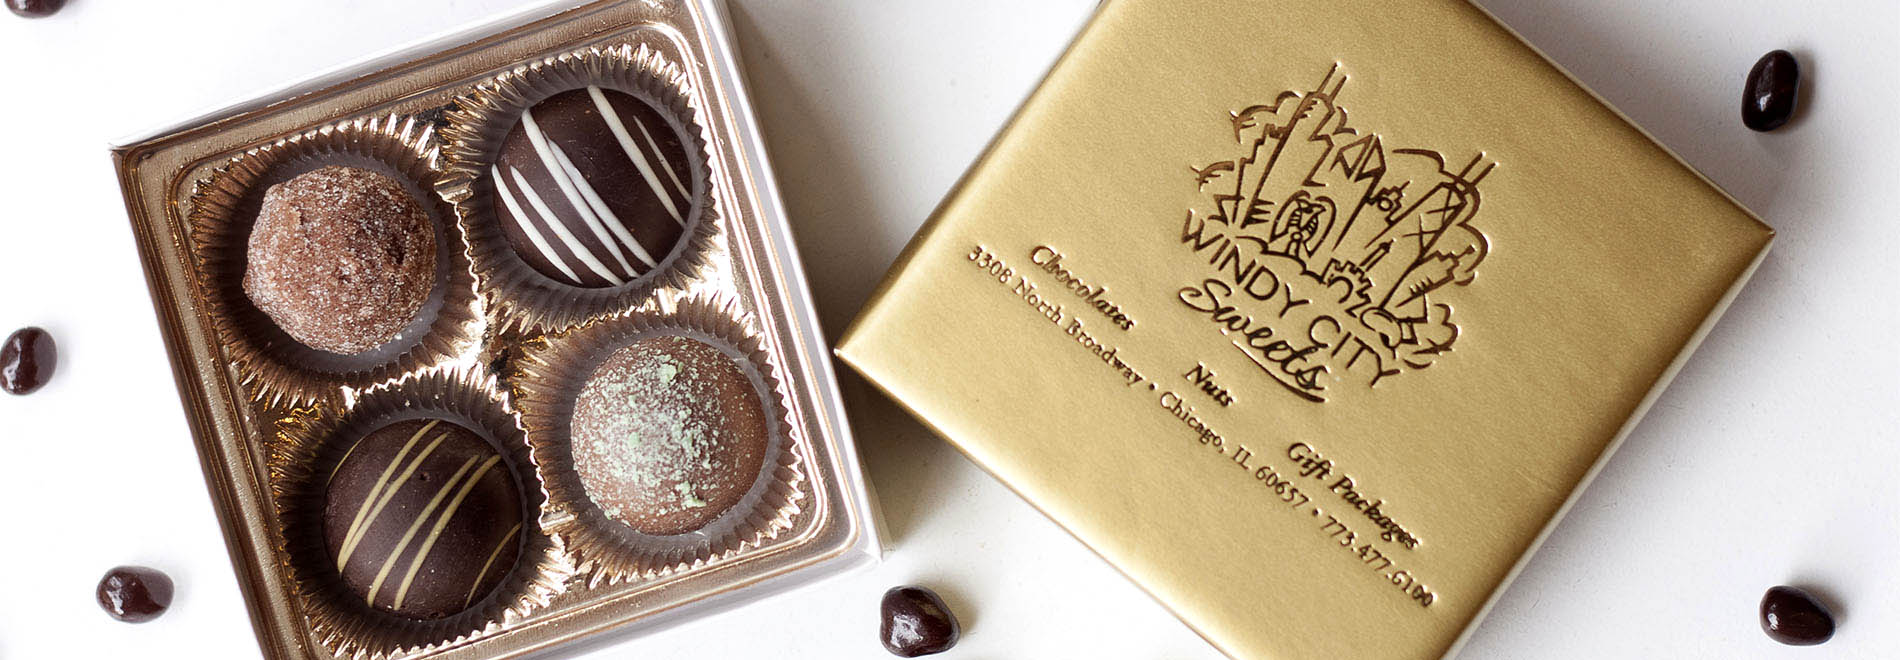 Elegant Chocolate Truffles in Our Gold Gift Boxes